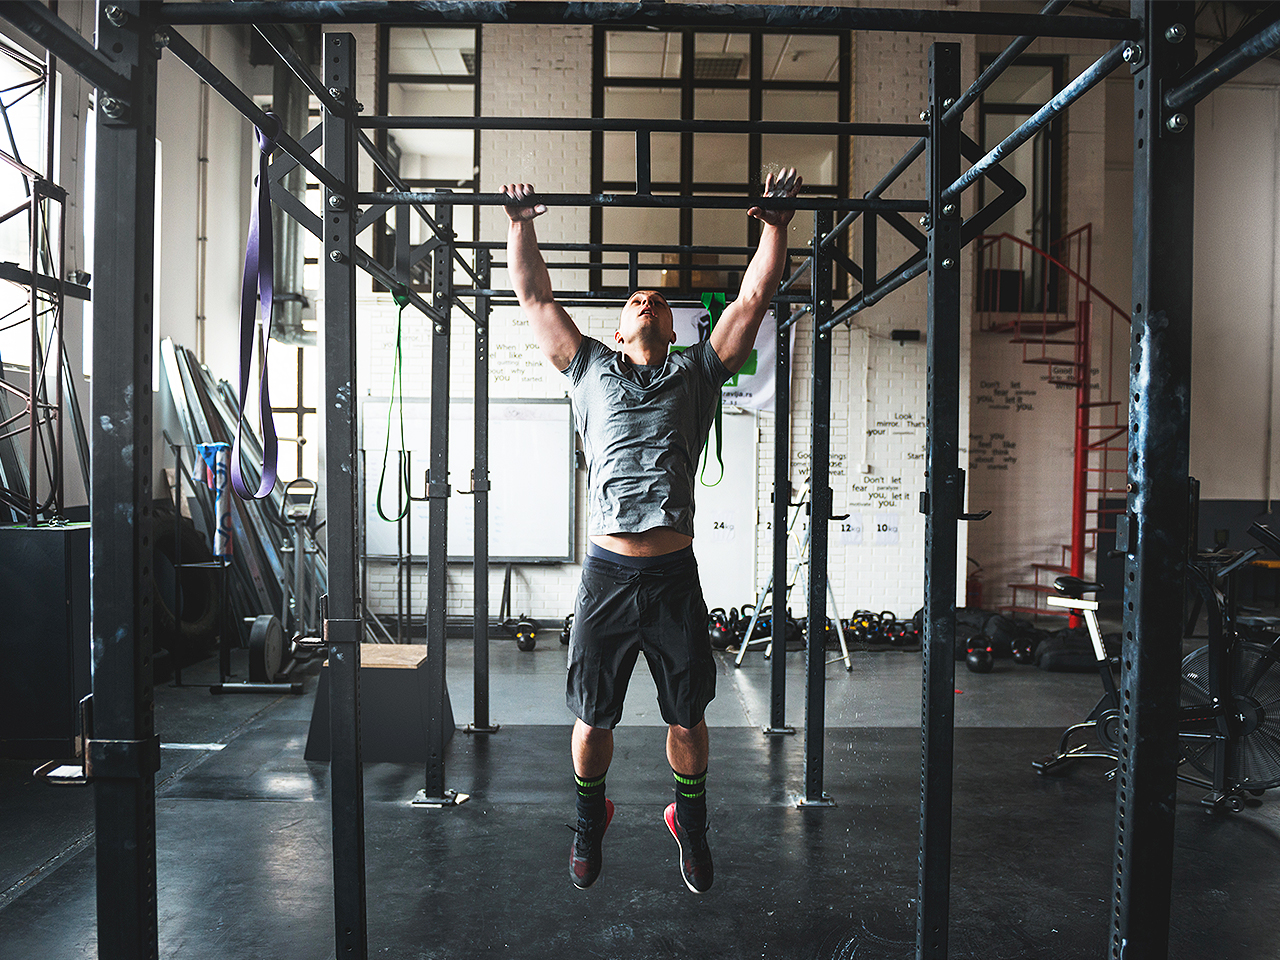 Today's Workout: The bodyweight workout you can do with just a pullup